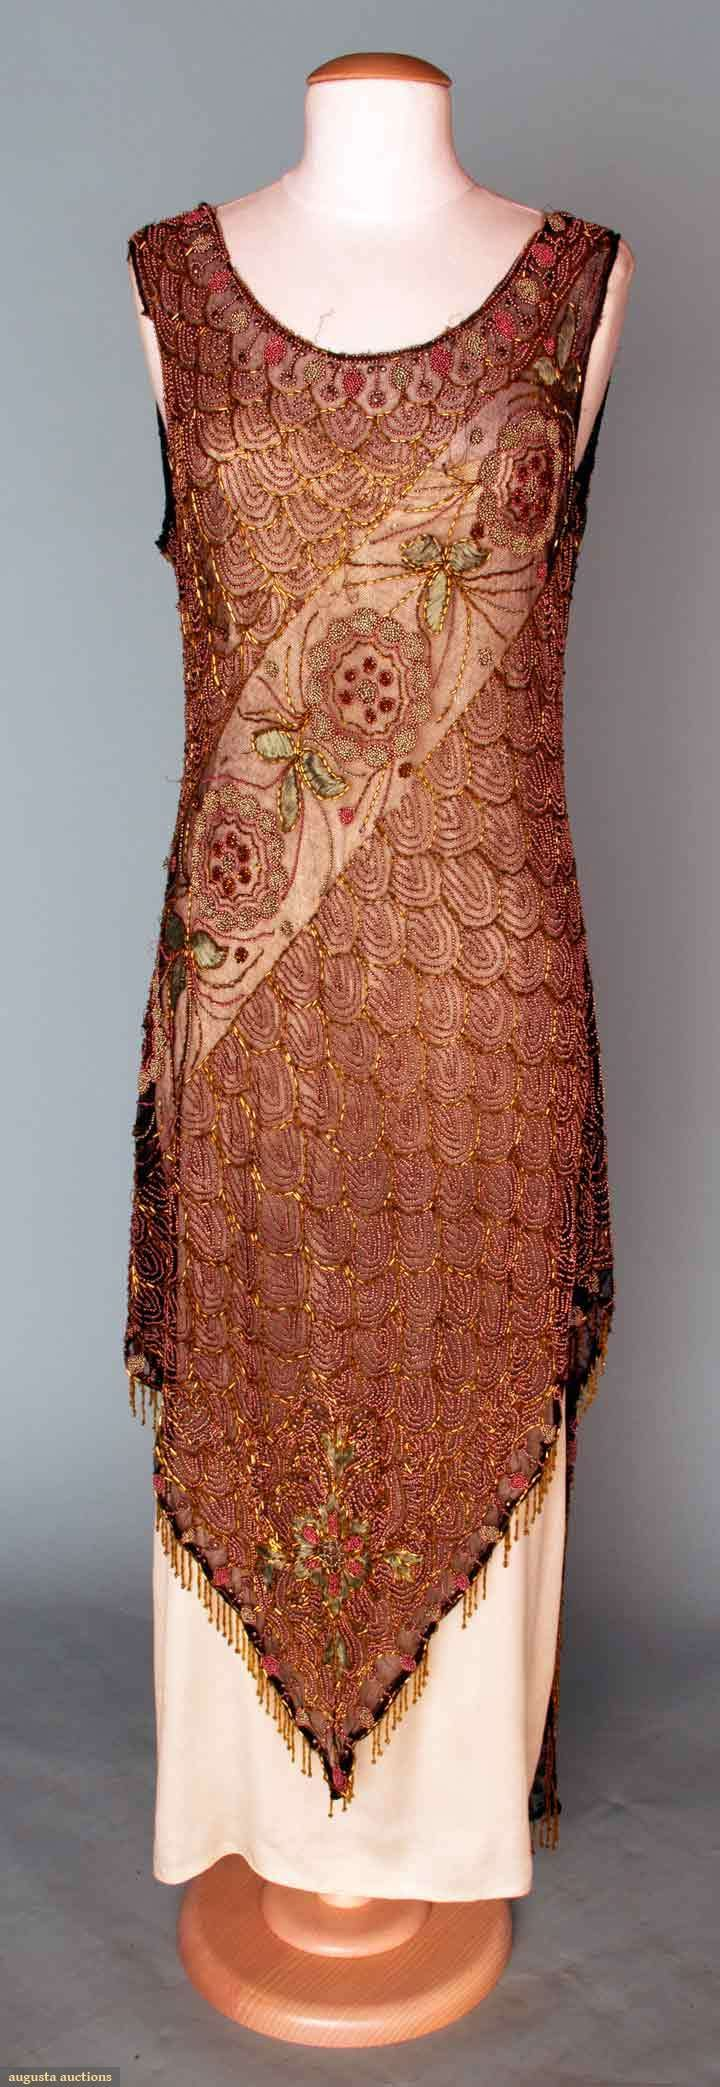 1920 lace dress  us art deco style dress  Daisy Buchanan  Pinterest  More Art